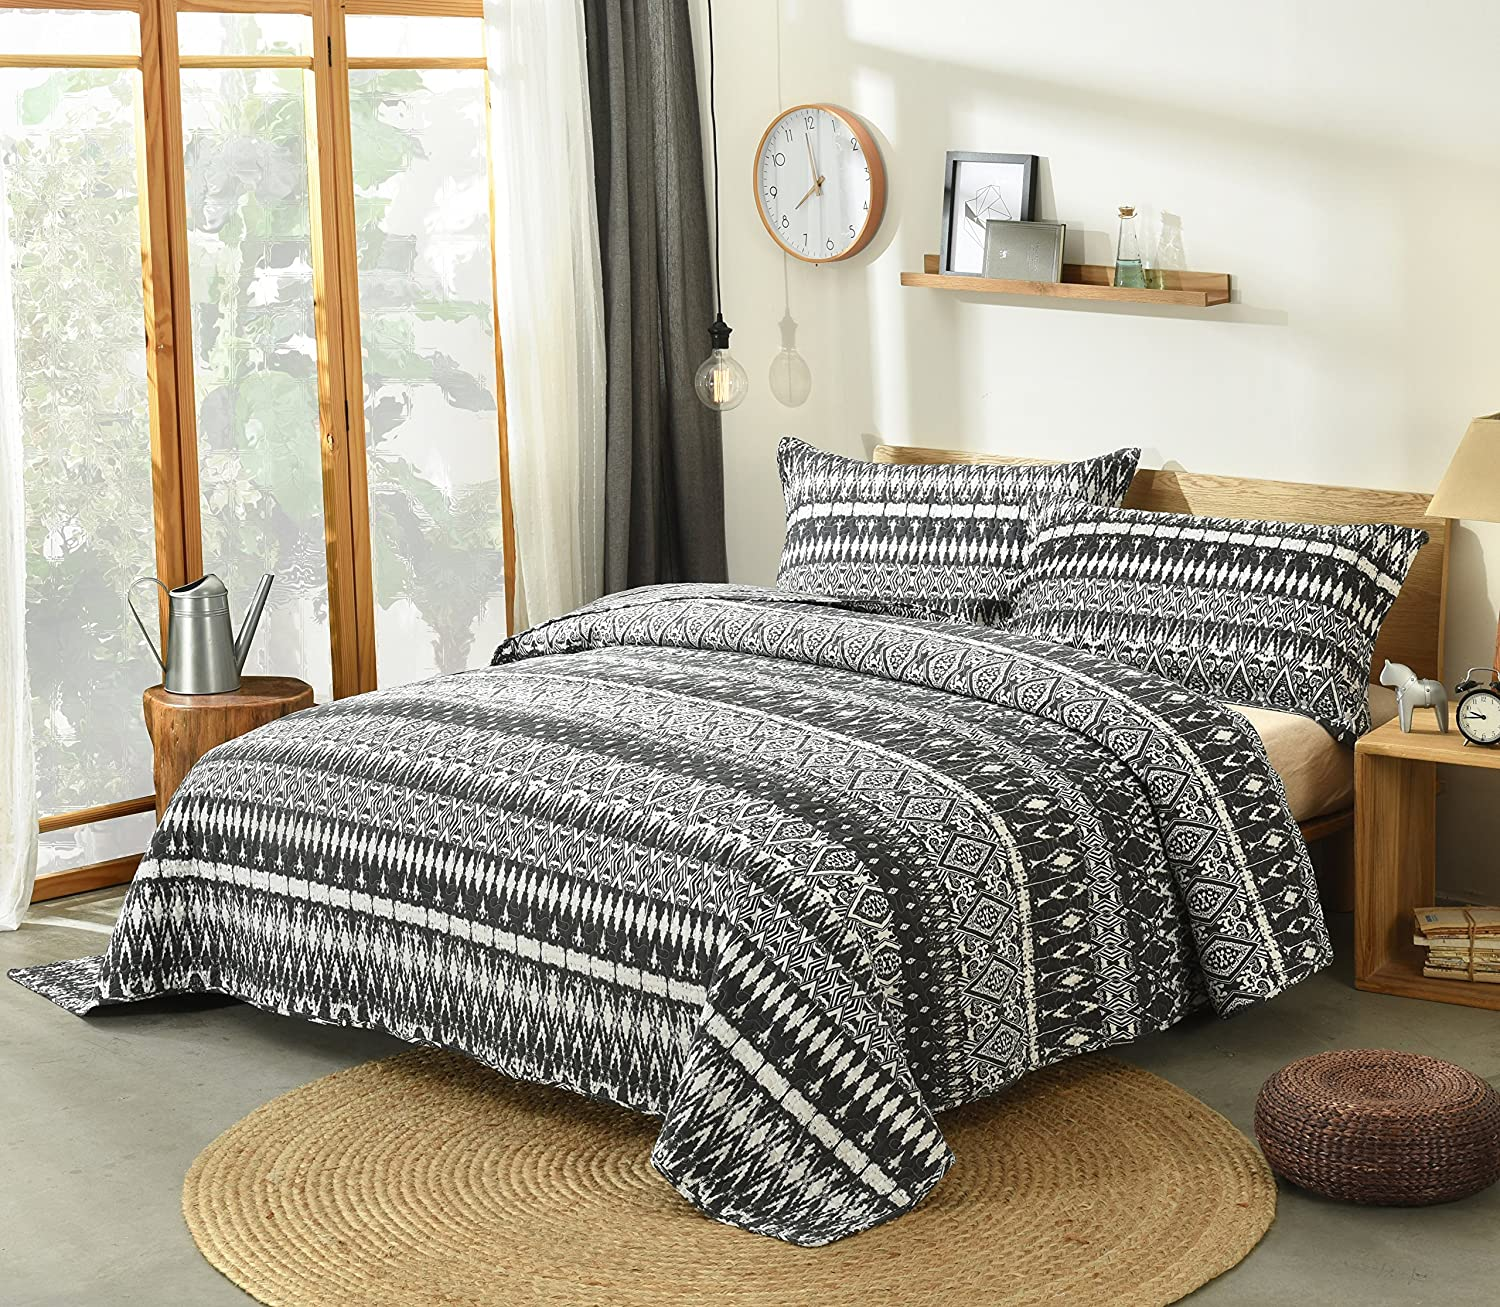 DaDa Bedding Aztec Bedspread Set - Geometric Diamond Stripes Quilted Coverlet - Reversible Black & White - King - 3-Pieces